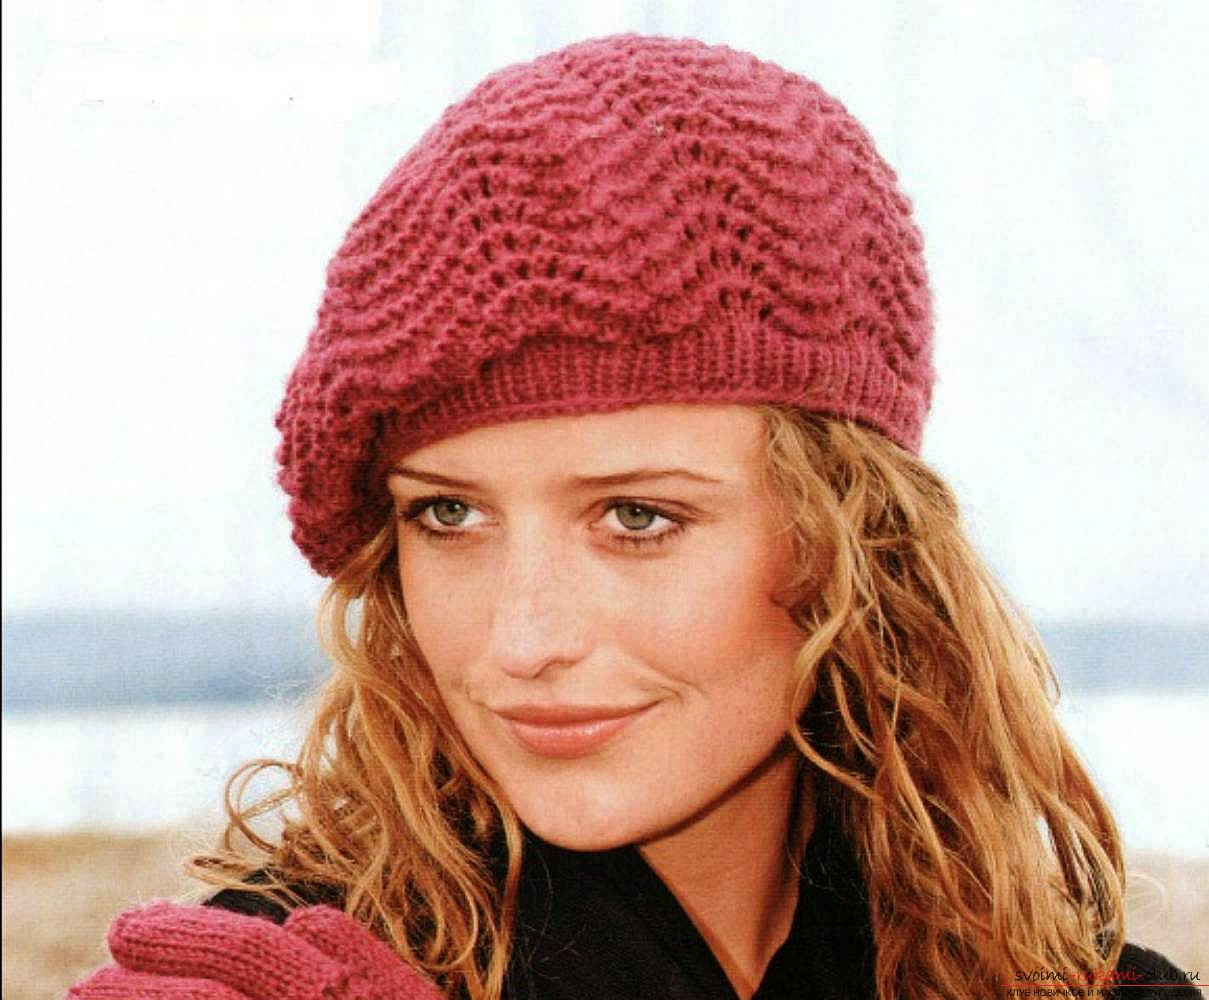 knitted needles for women autumn beret. Photo №1